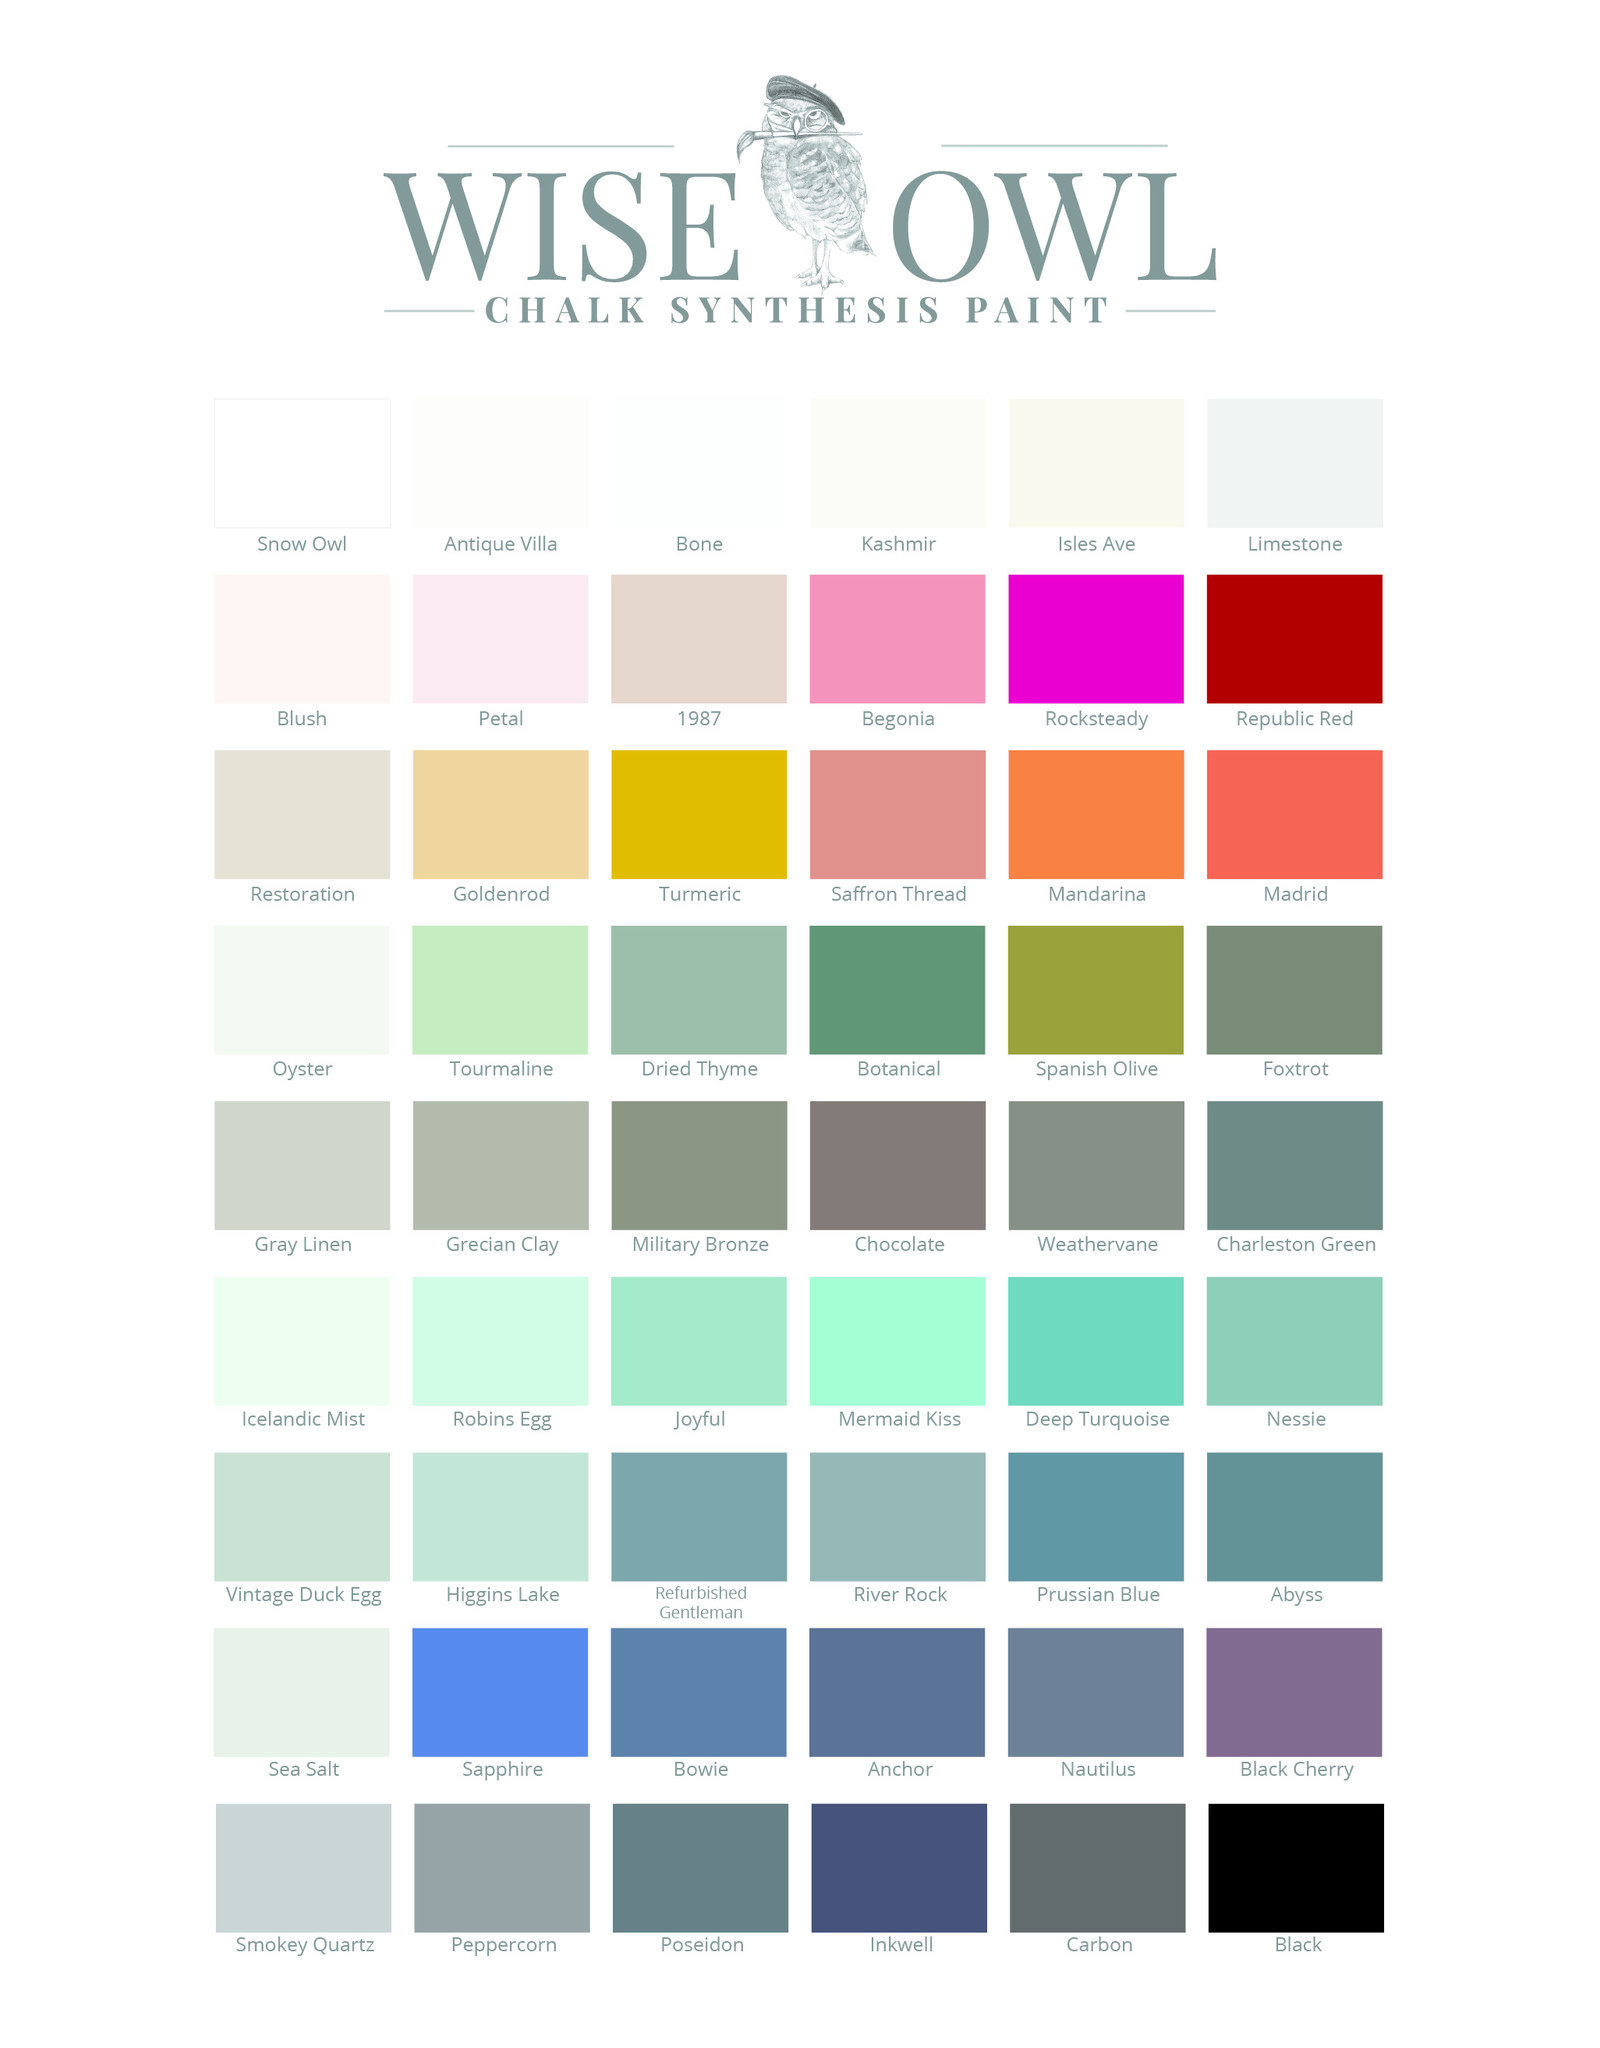 Wise Owl Paint Chalk Synthesis Paint-Isles Ave Pint